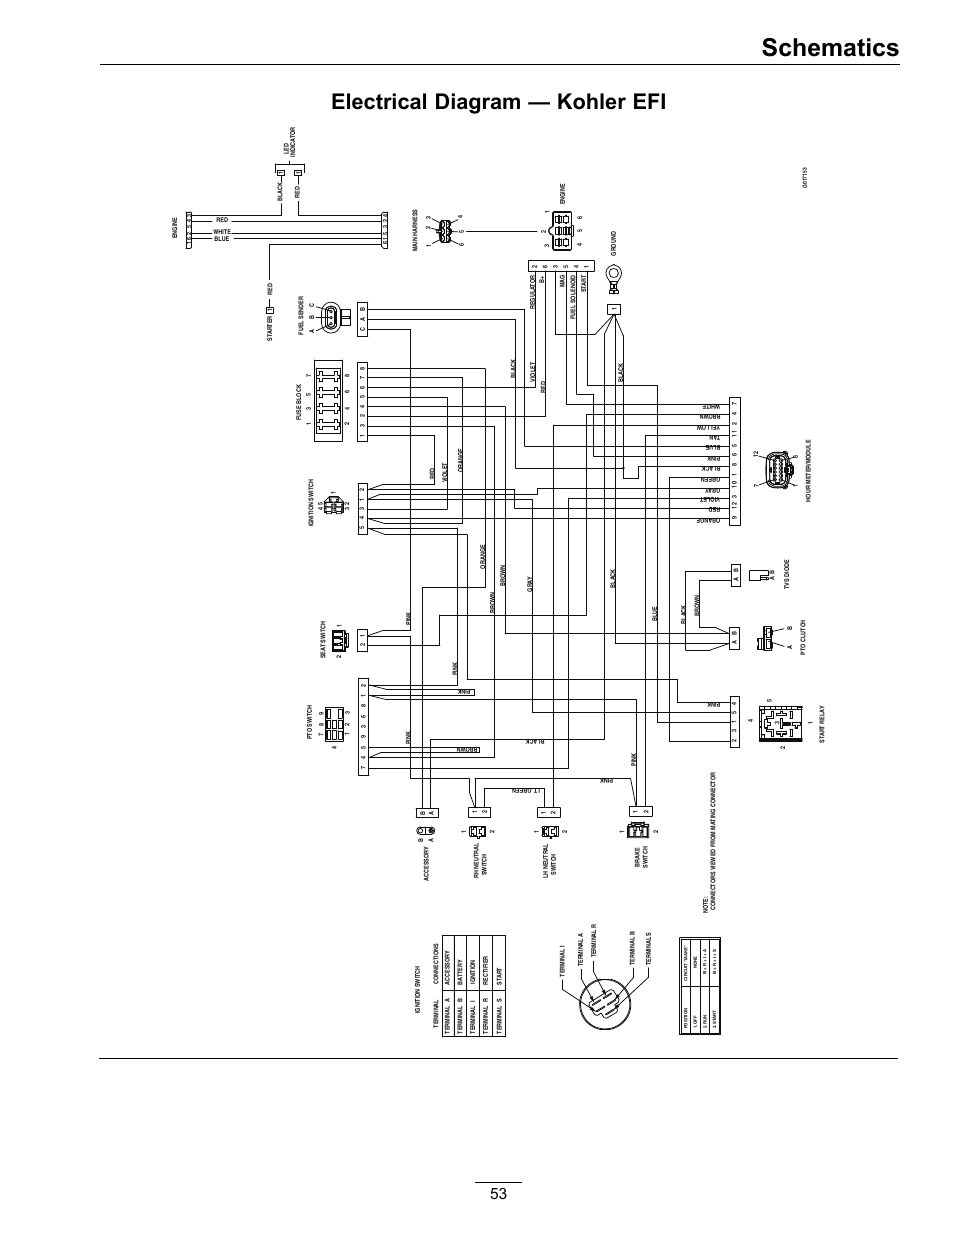 [DIAGRAM_1CA]  Schematics, Electrical diagram — kohler efi | Exmark Lazer Z S-Series User  Manual | Page 53 / 60 | Lazer 5 Wiring Diagram |  | Manuals Directory